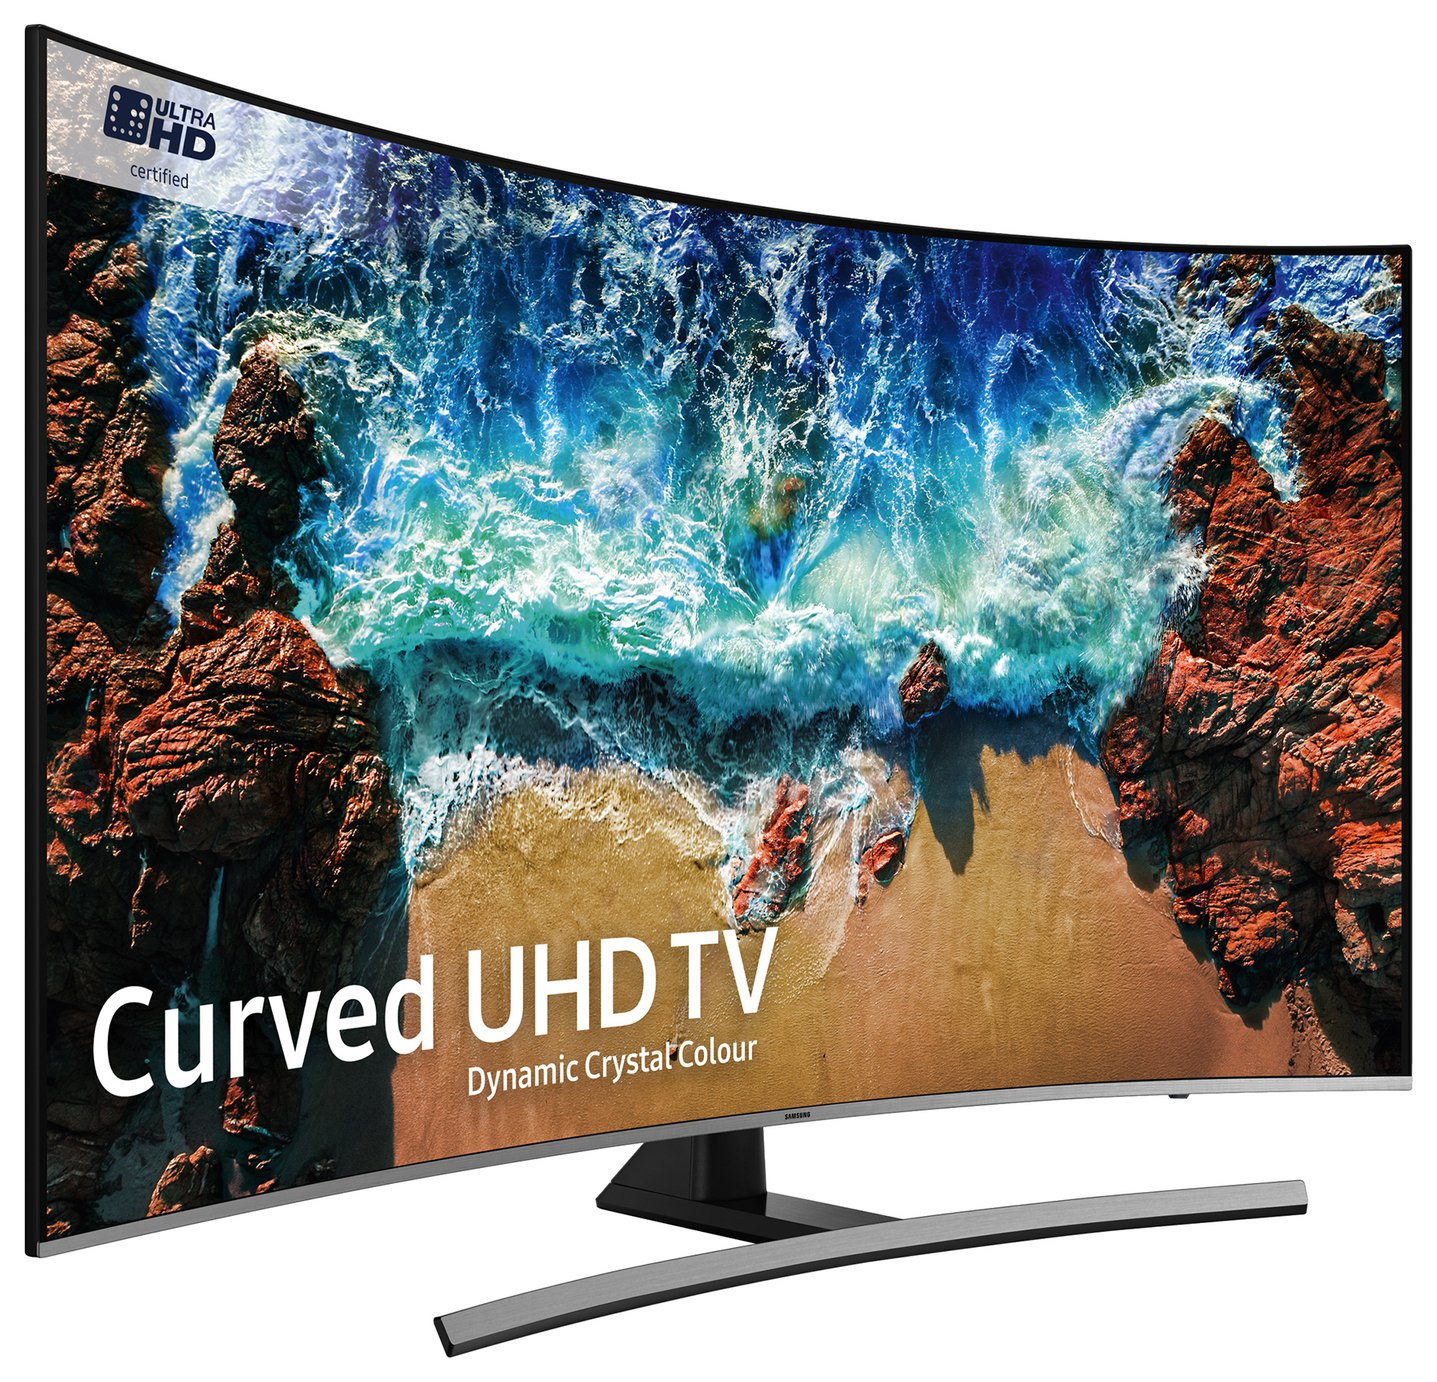 Samsung Samsung 55 Inch 55NU8500 Smart 4K UHD TV with HDR